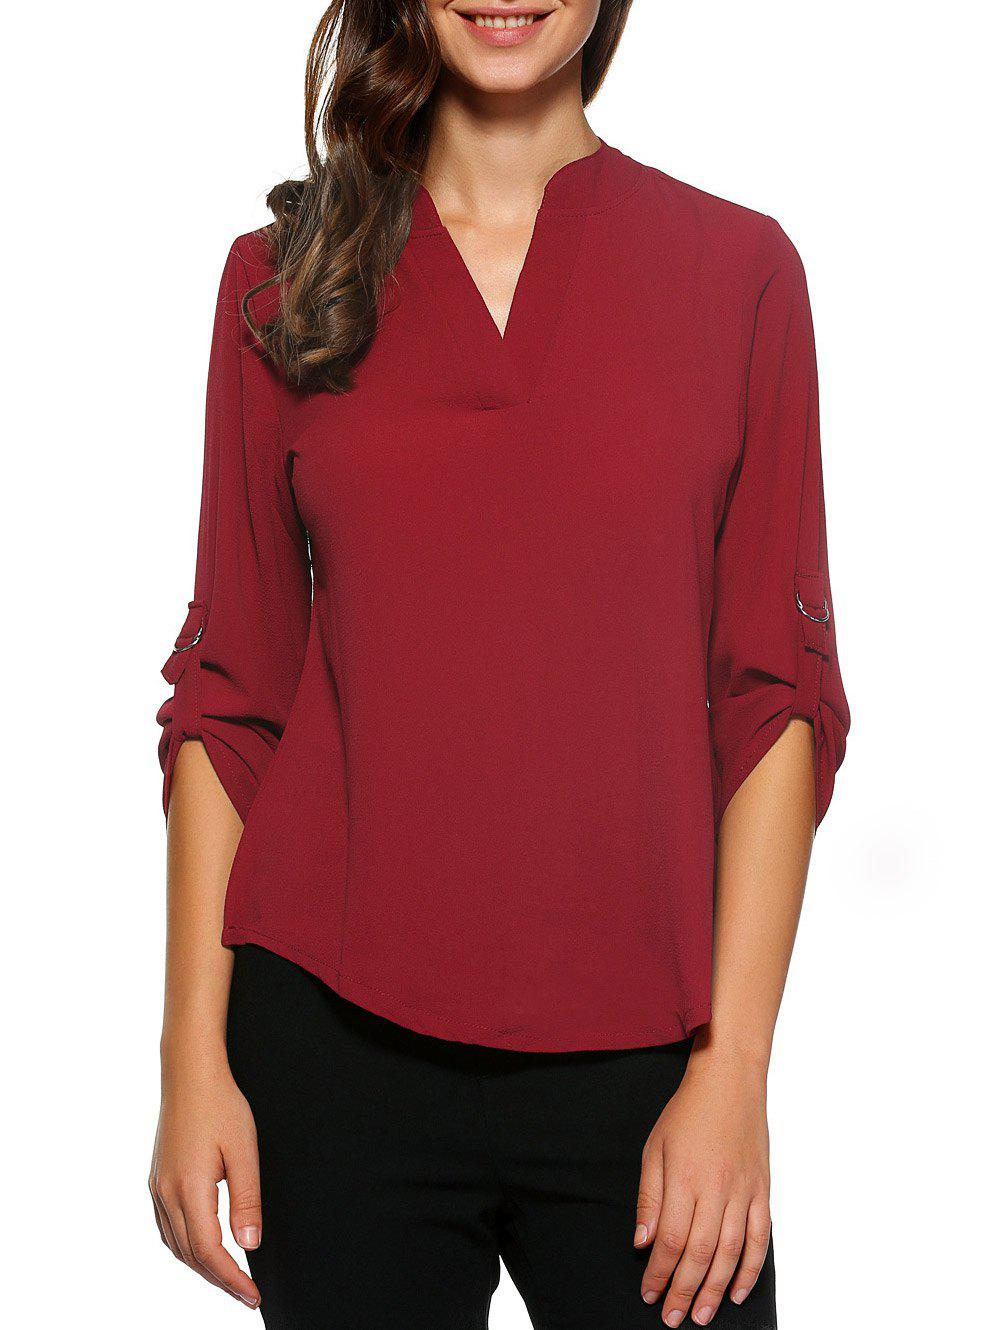 D-Ring Roll Sleeve Haut Bas Blouse - Rouge vineux 2XL